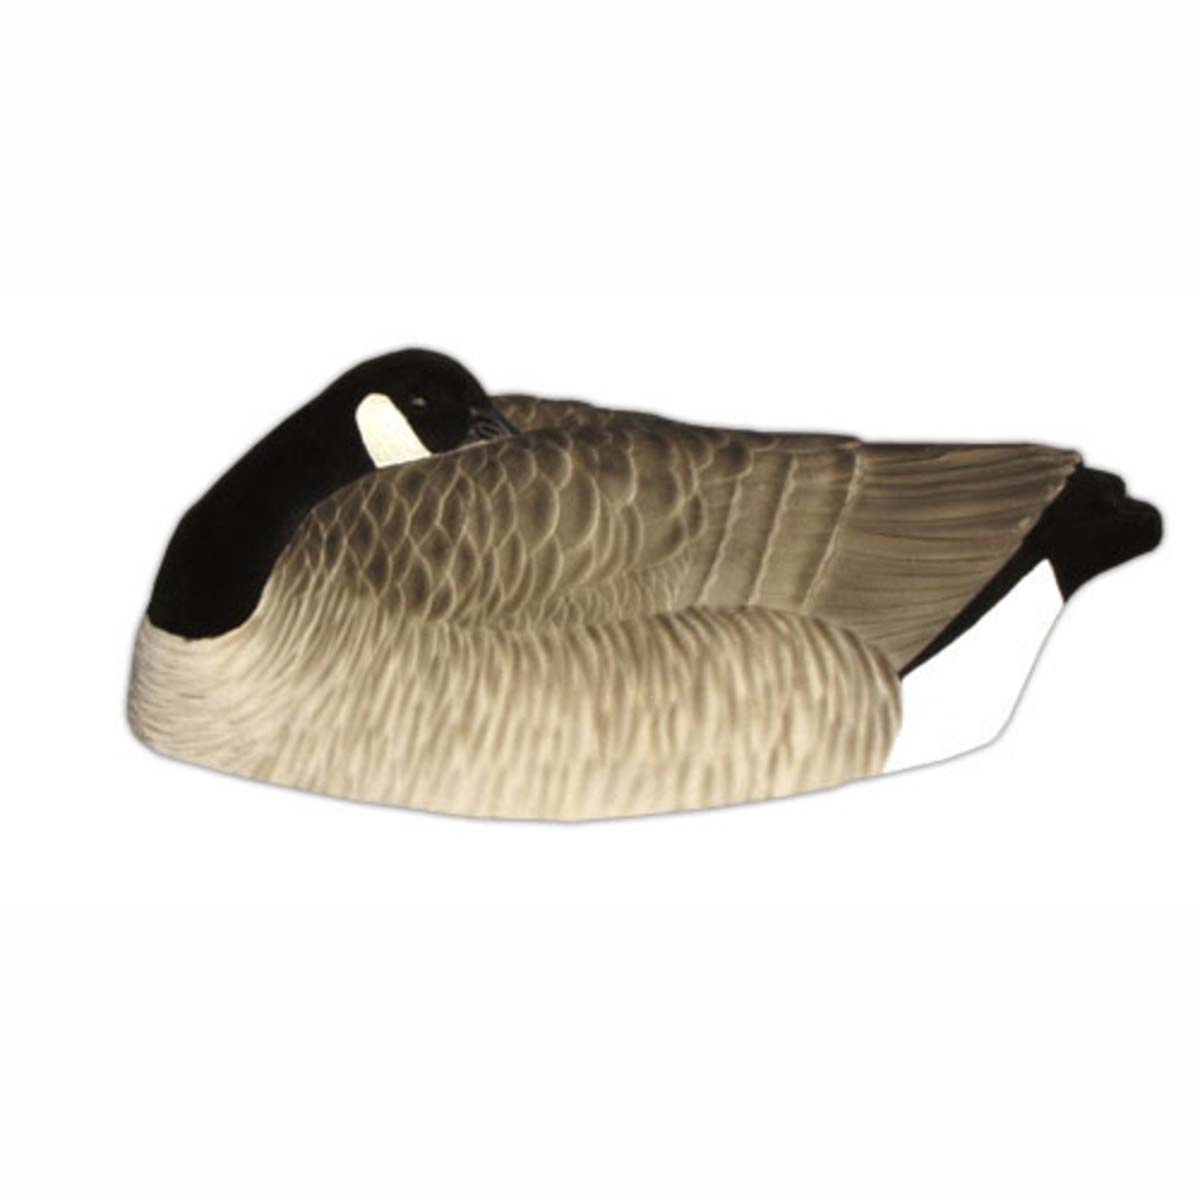 Dakota Decoy Painted One Piece Canada Sleeper Shell Decoys, 12-Pack